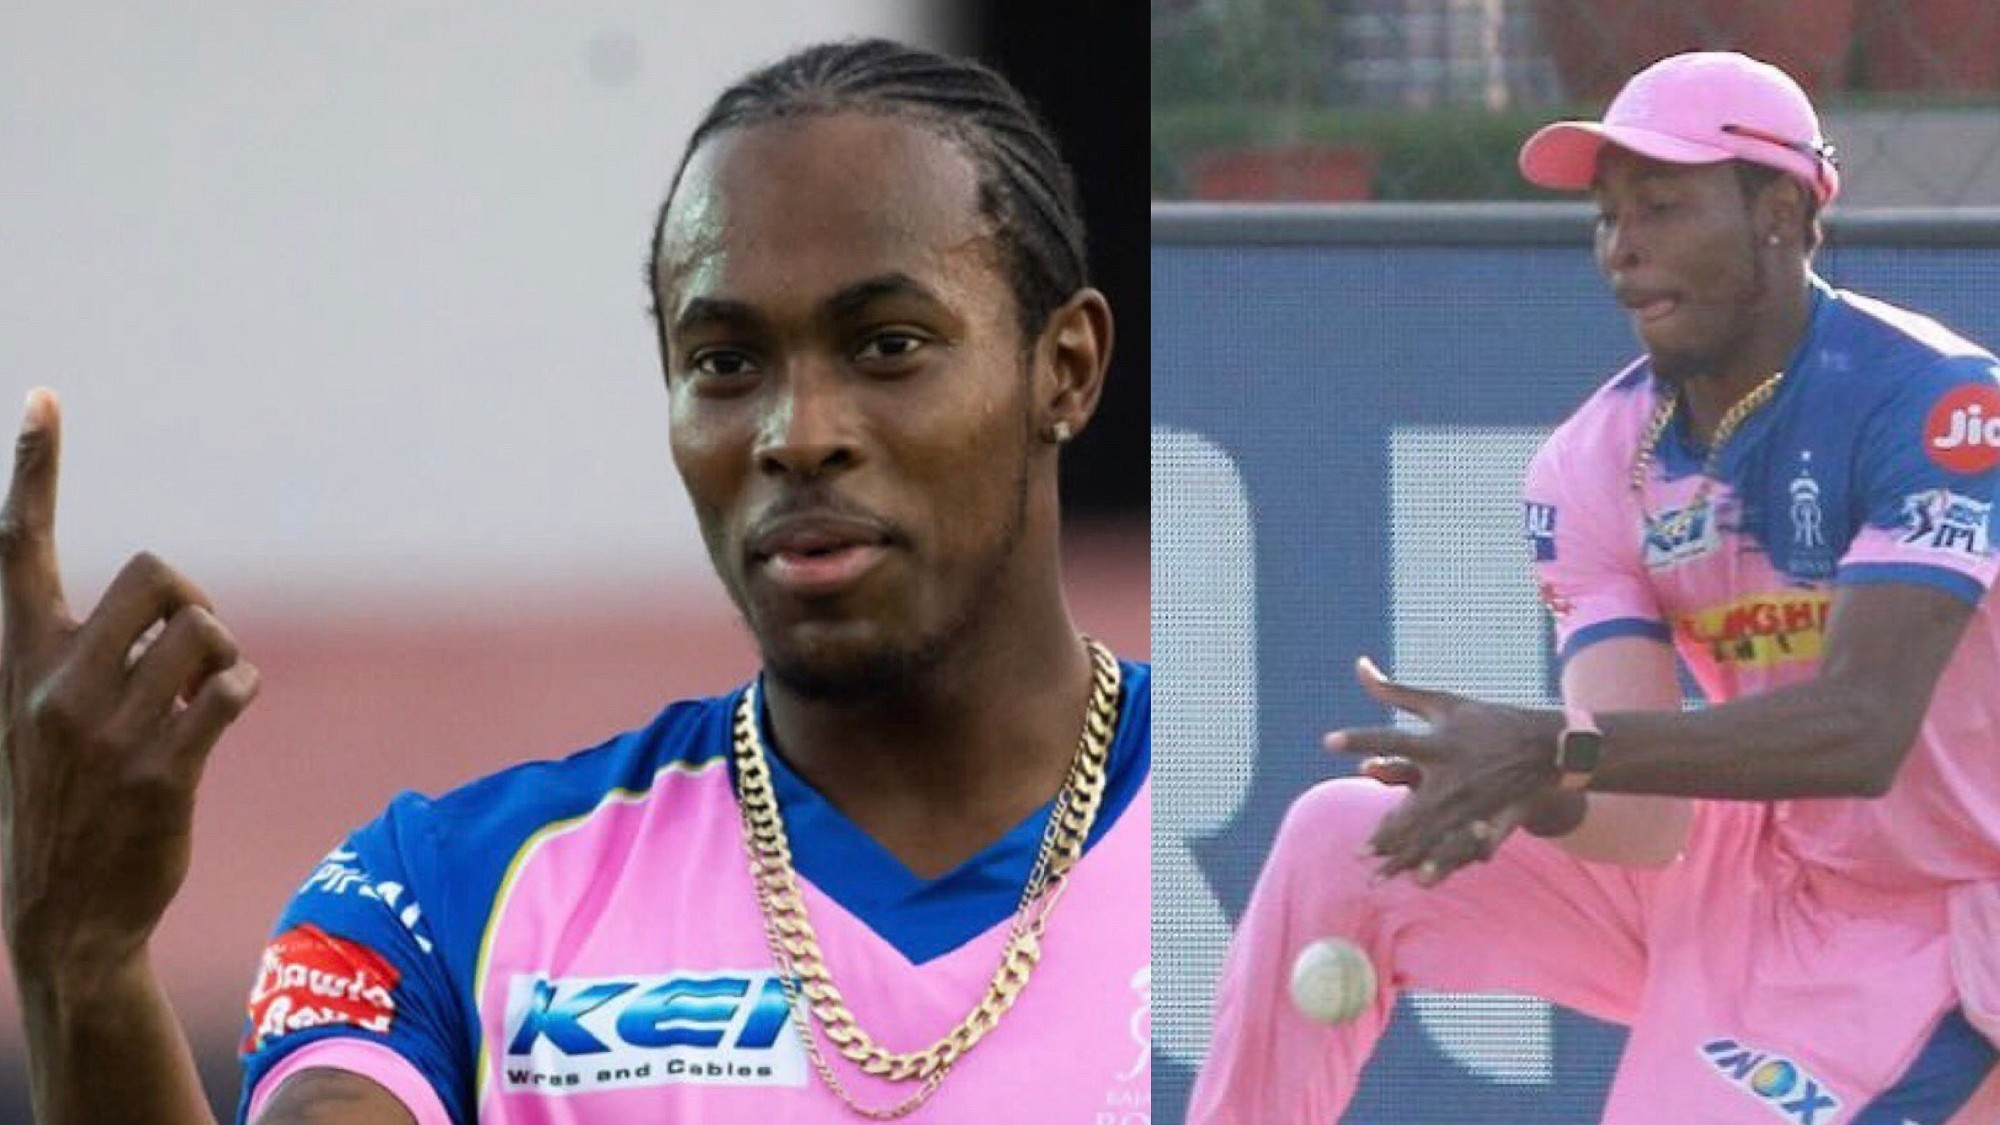 IPL 2019: Twitterati roasts Jofra Archer after he drops three catches against Mumbai Indians